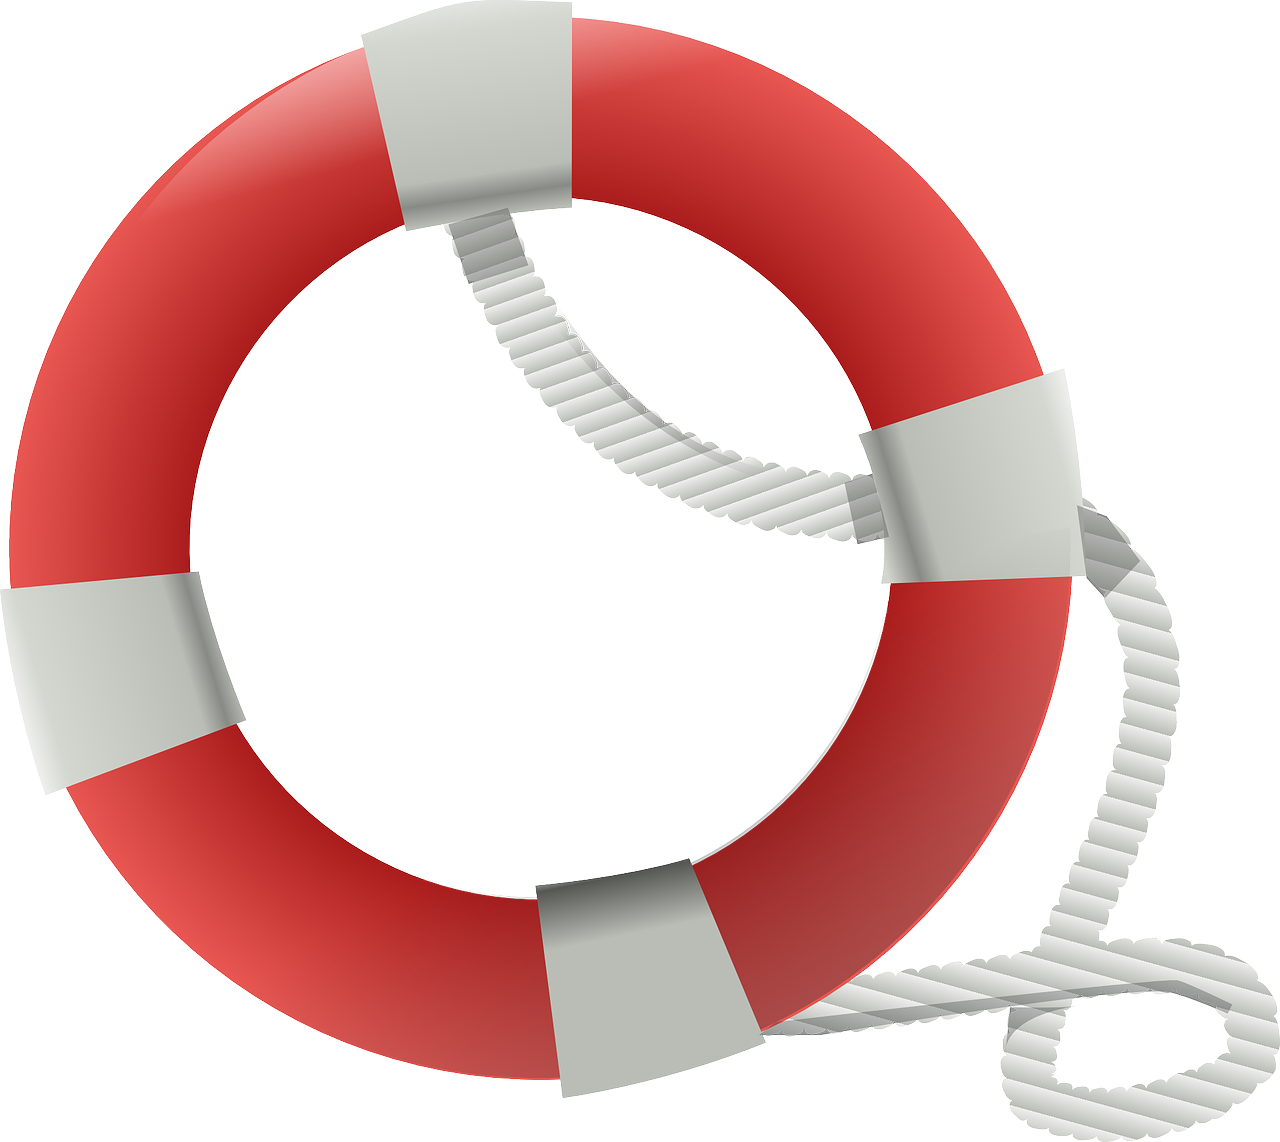 Rescue ring png. Lifebuoy